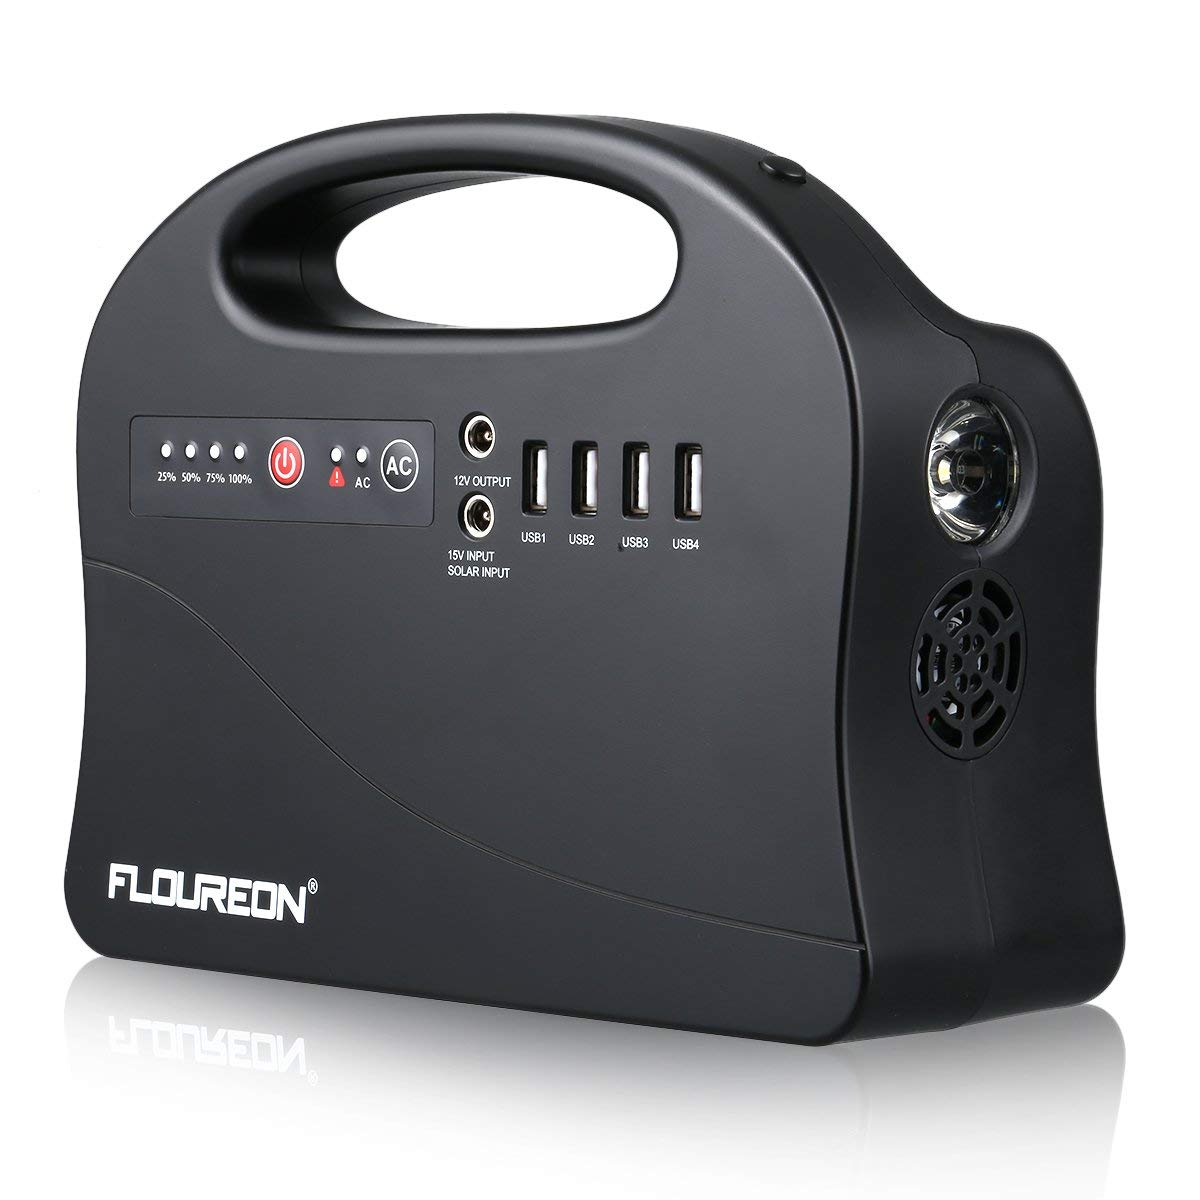 floureon Portable Power Station 200W, 146wh/42000mAh Solar Generator Backup Power Supply with 110V AC Outlet, 2 DC Output, 4 USB Output, LED Flashlight, Charged by Solar Panel/Wall Outlet/Car Charger